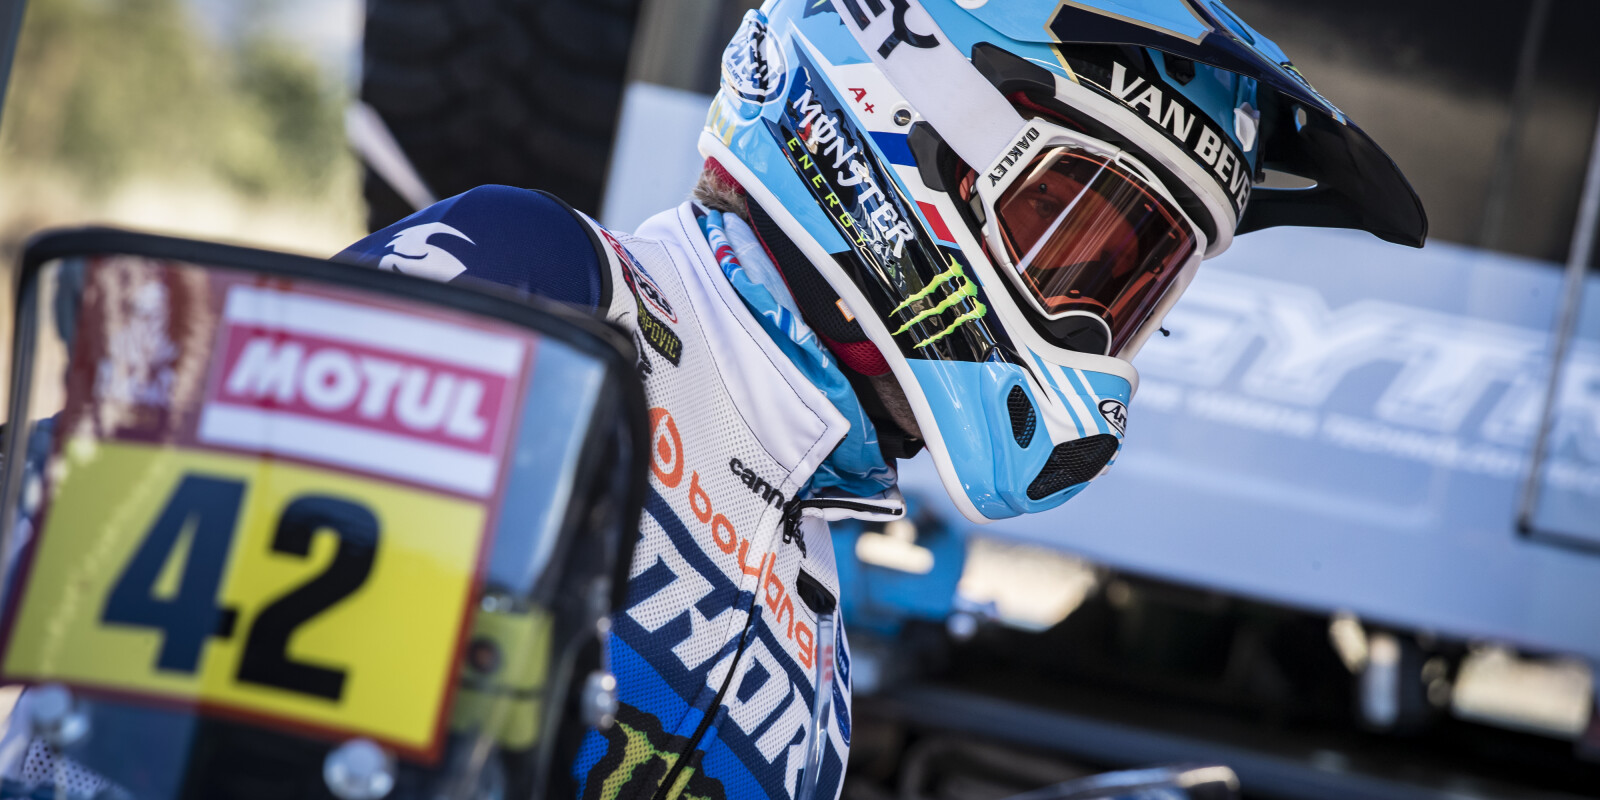 2021 Monster Energy Yamaha Rally Official Team - Pre 2021 Dakar PR Images - Adrien Van Beveren